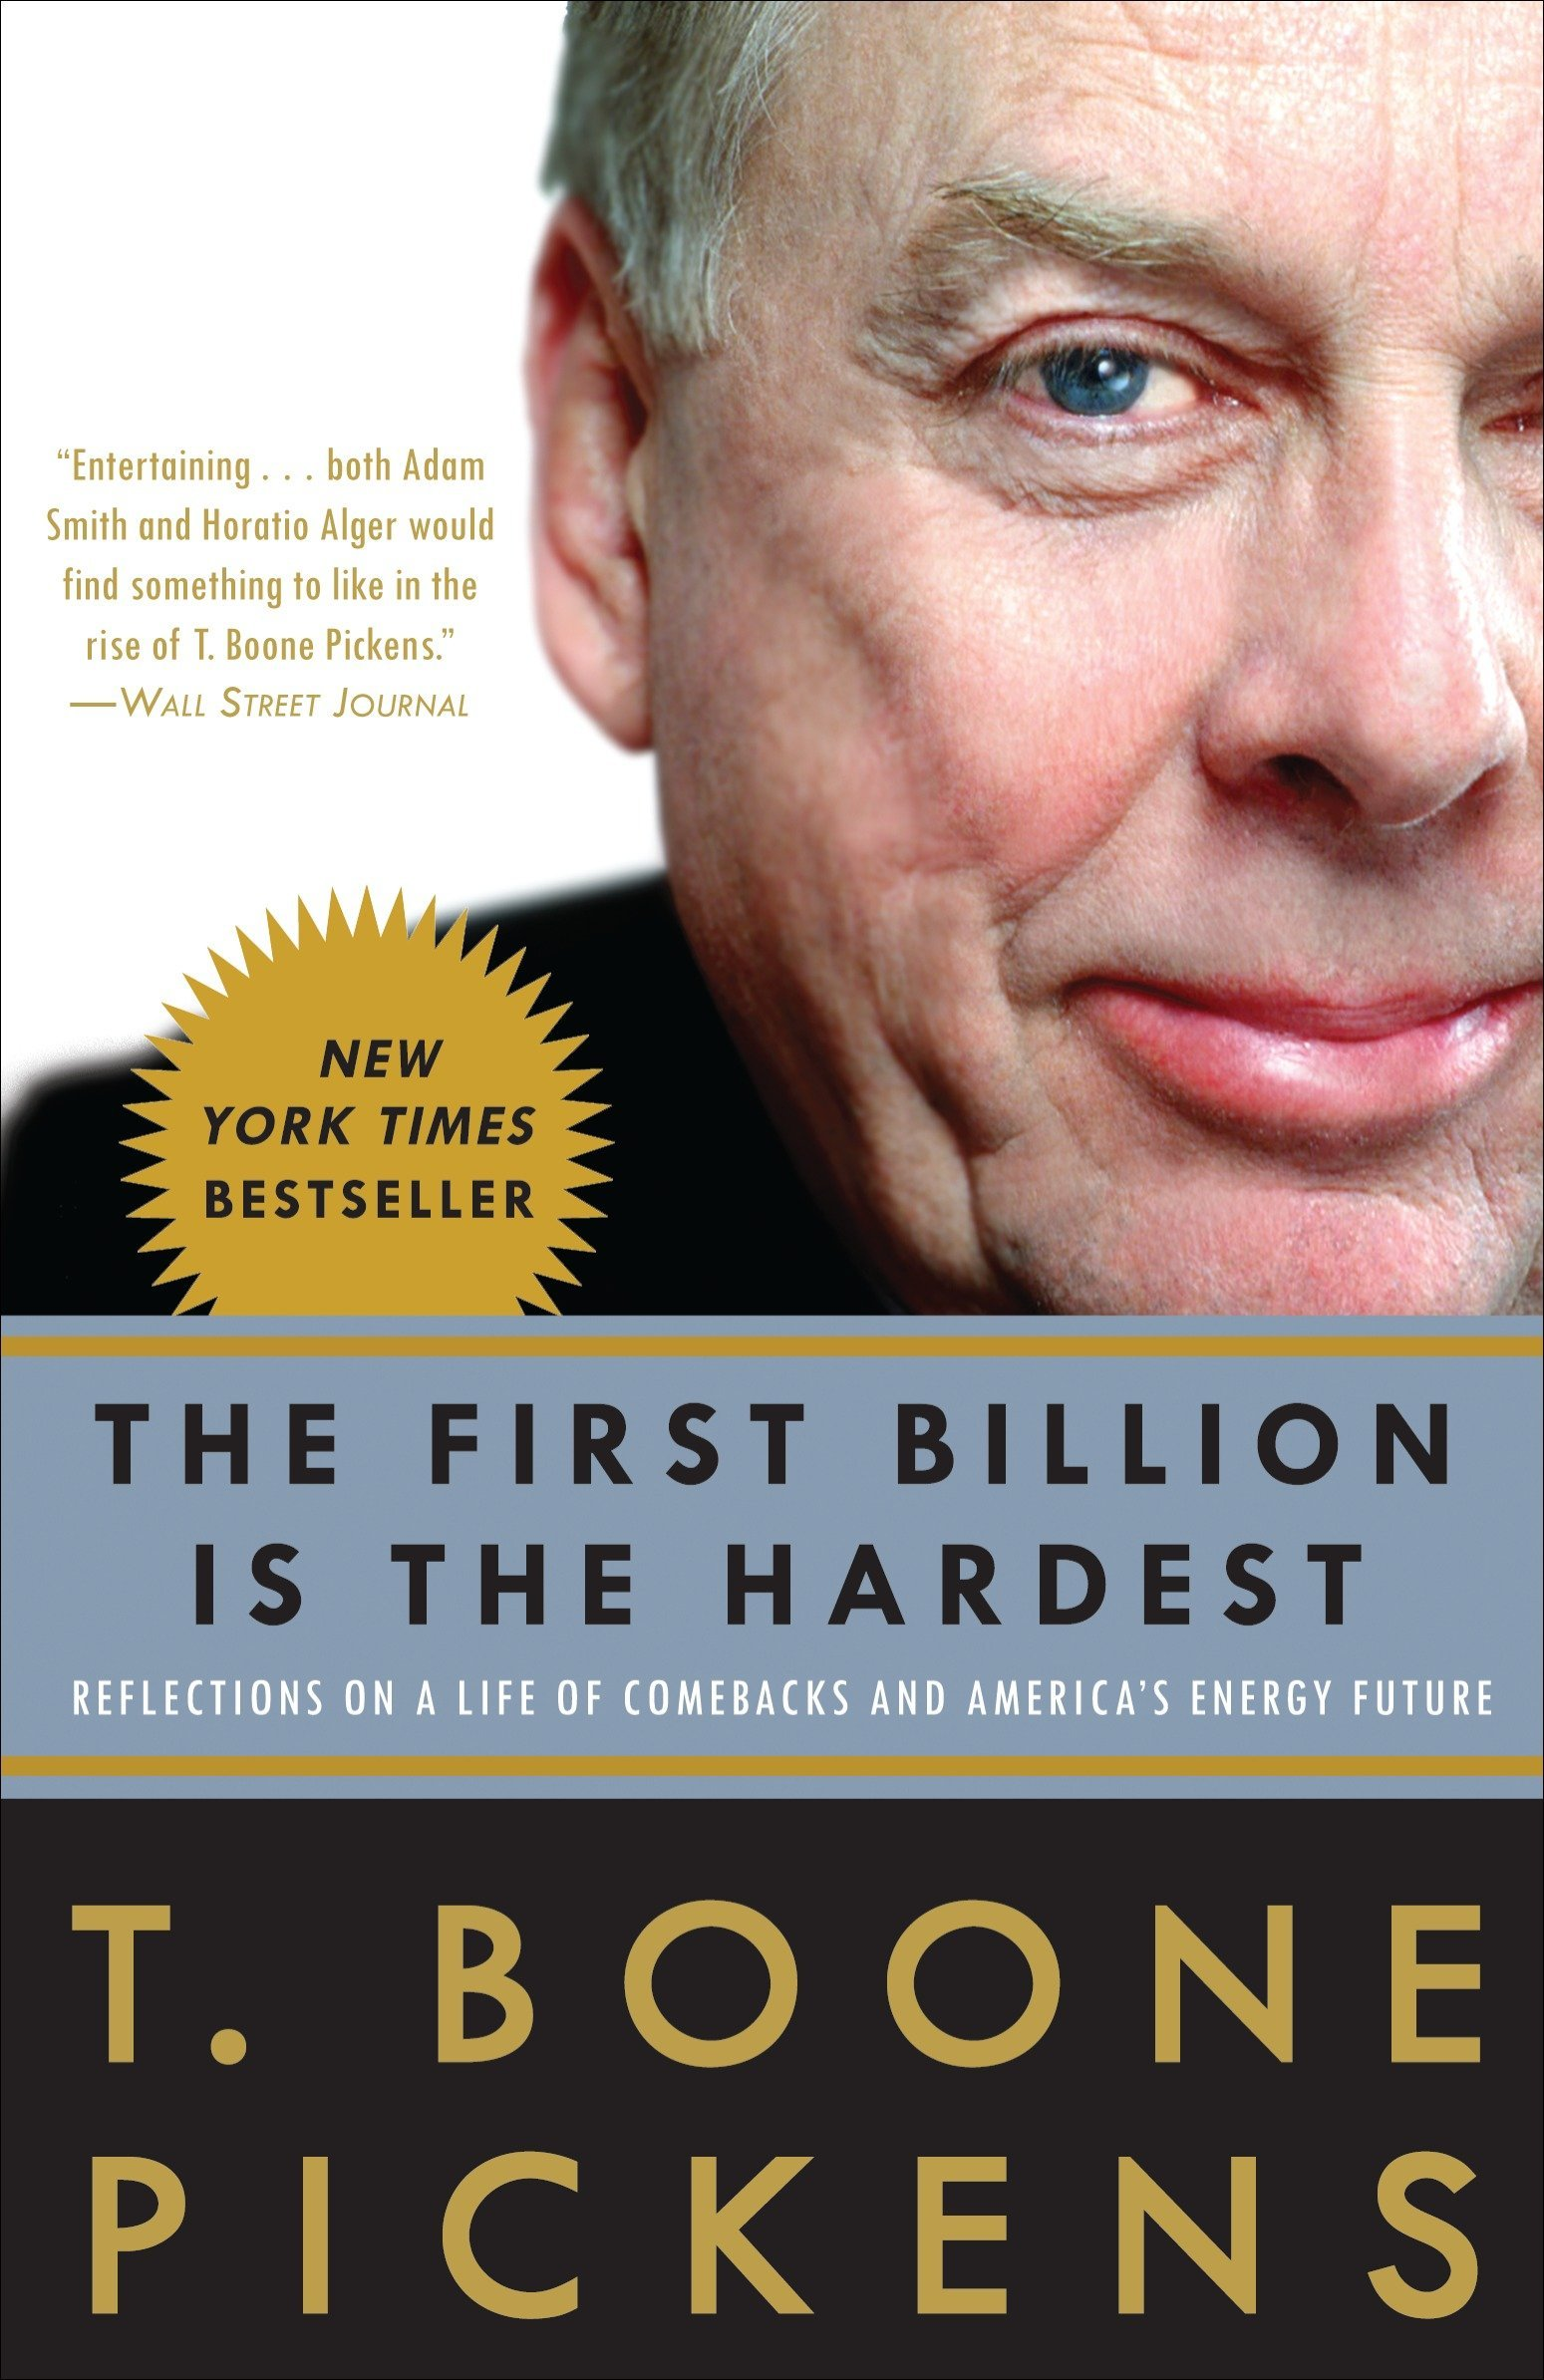 Image result for 'The First Billion Is the Hardest' by T. Boone Pickens